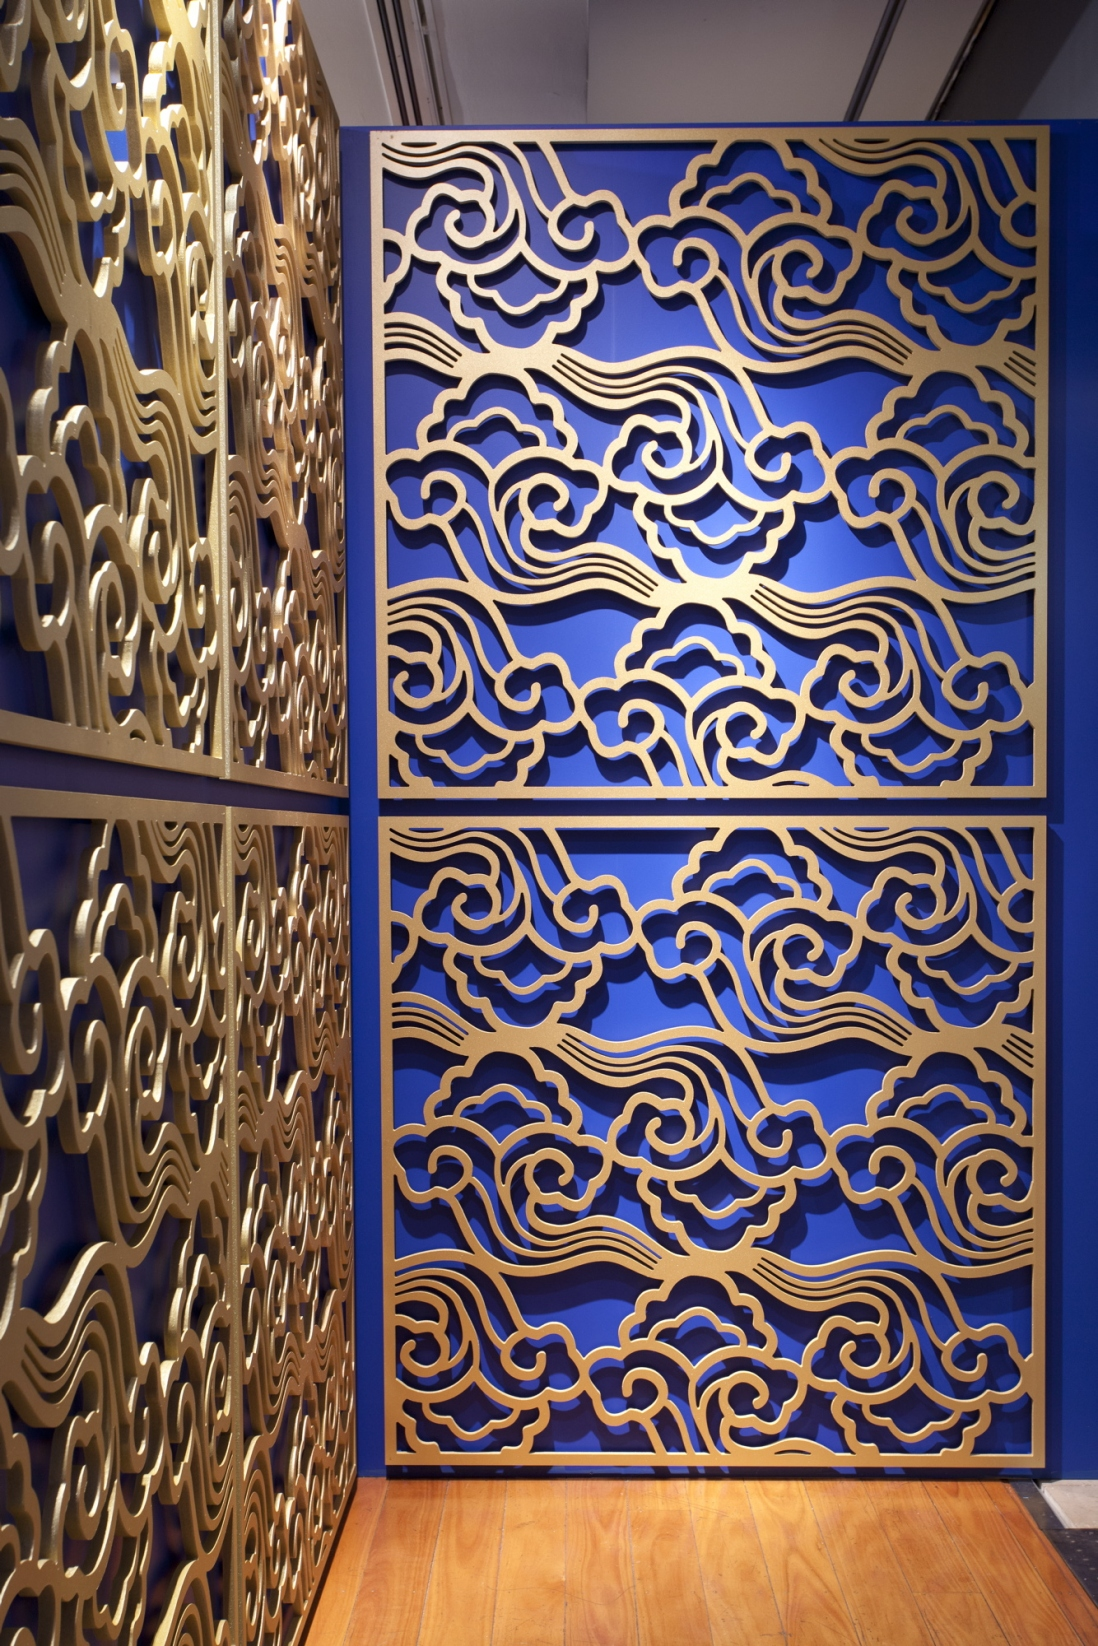 This is a photograph of gold painted cut-out panels featuring a cloud pattern on a blue wall